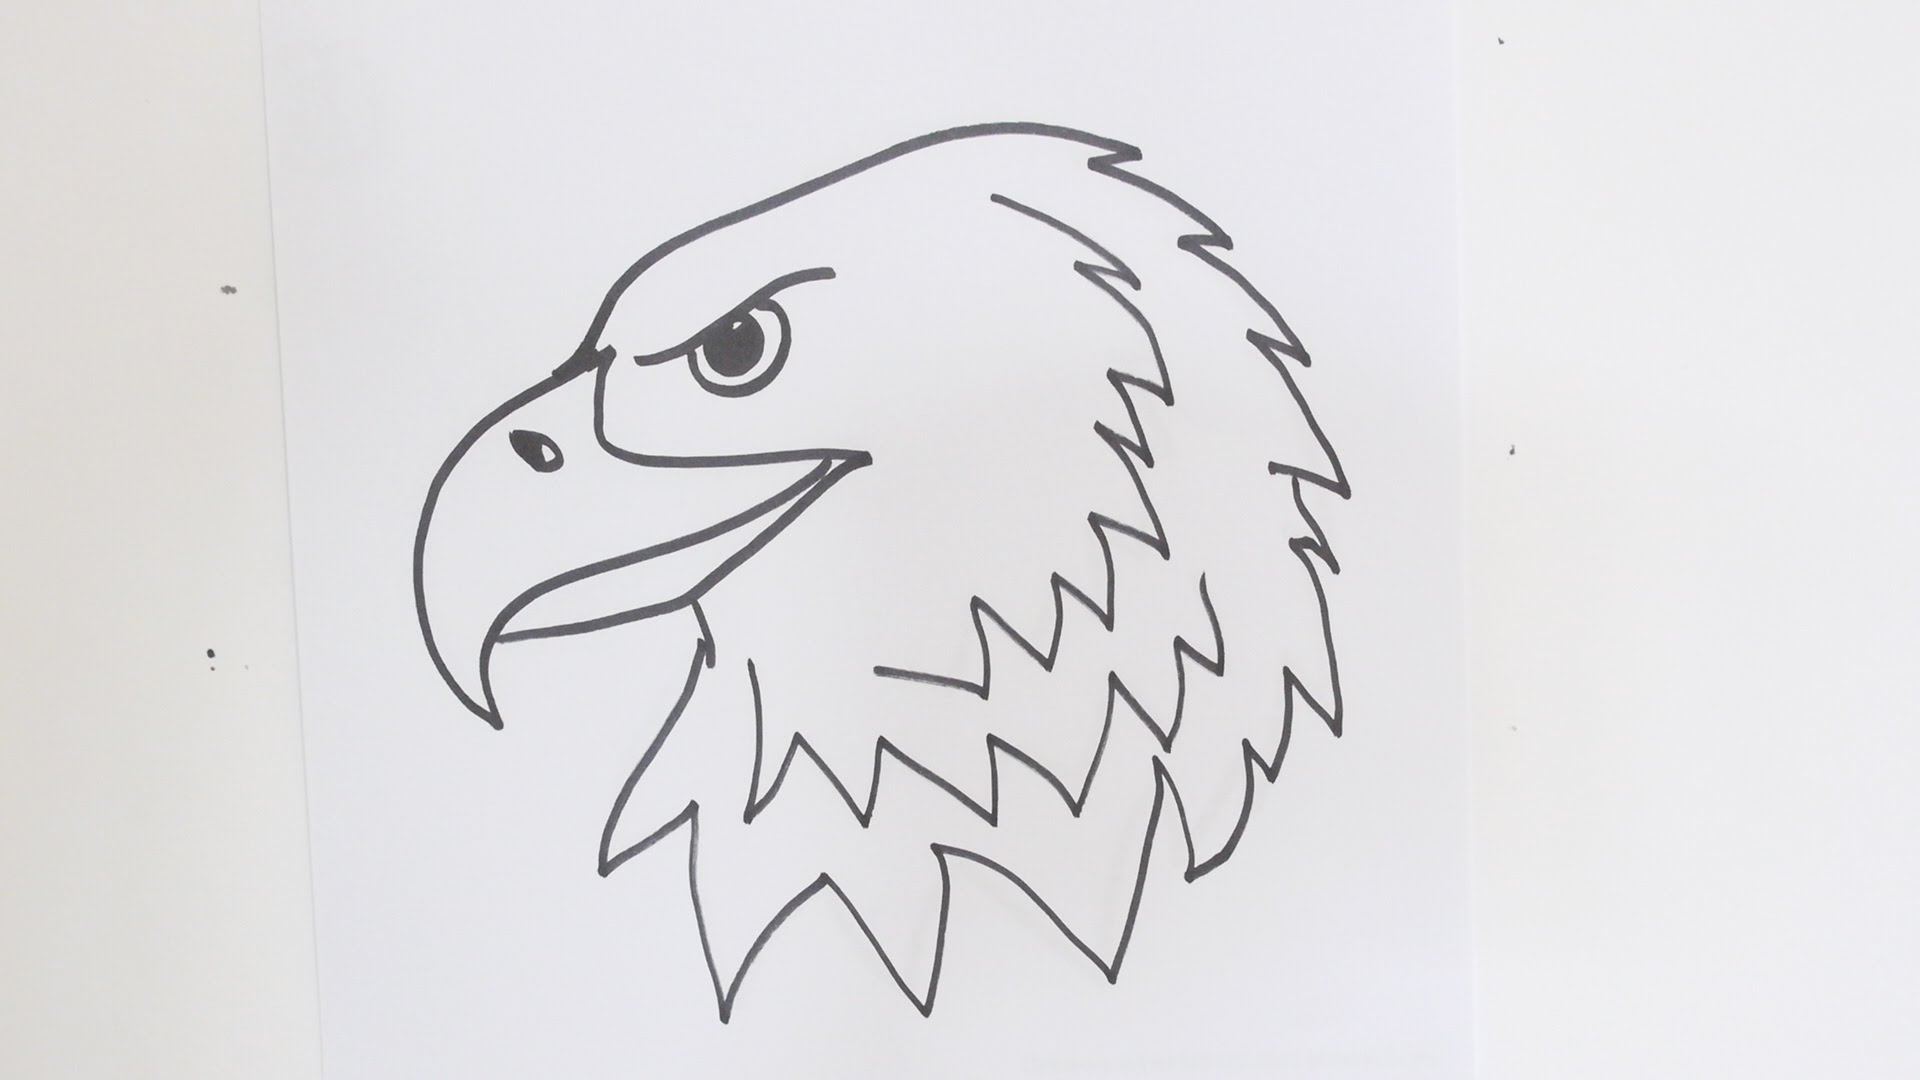 How to draw an eagle head step by step easy video tutorial ...